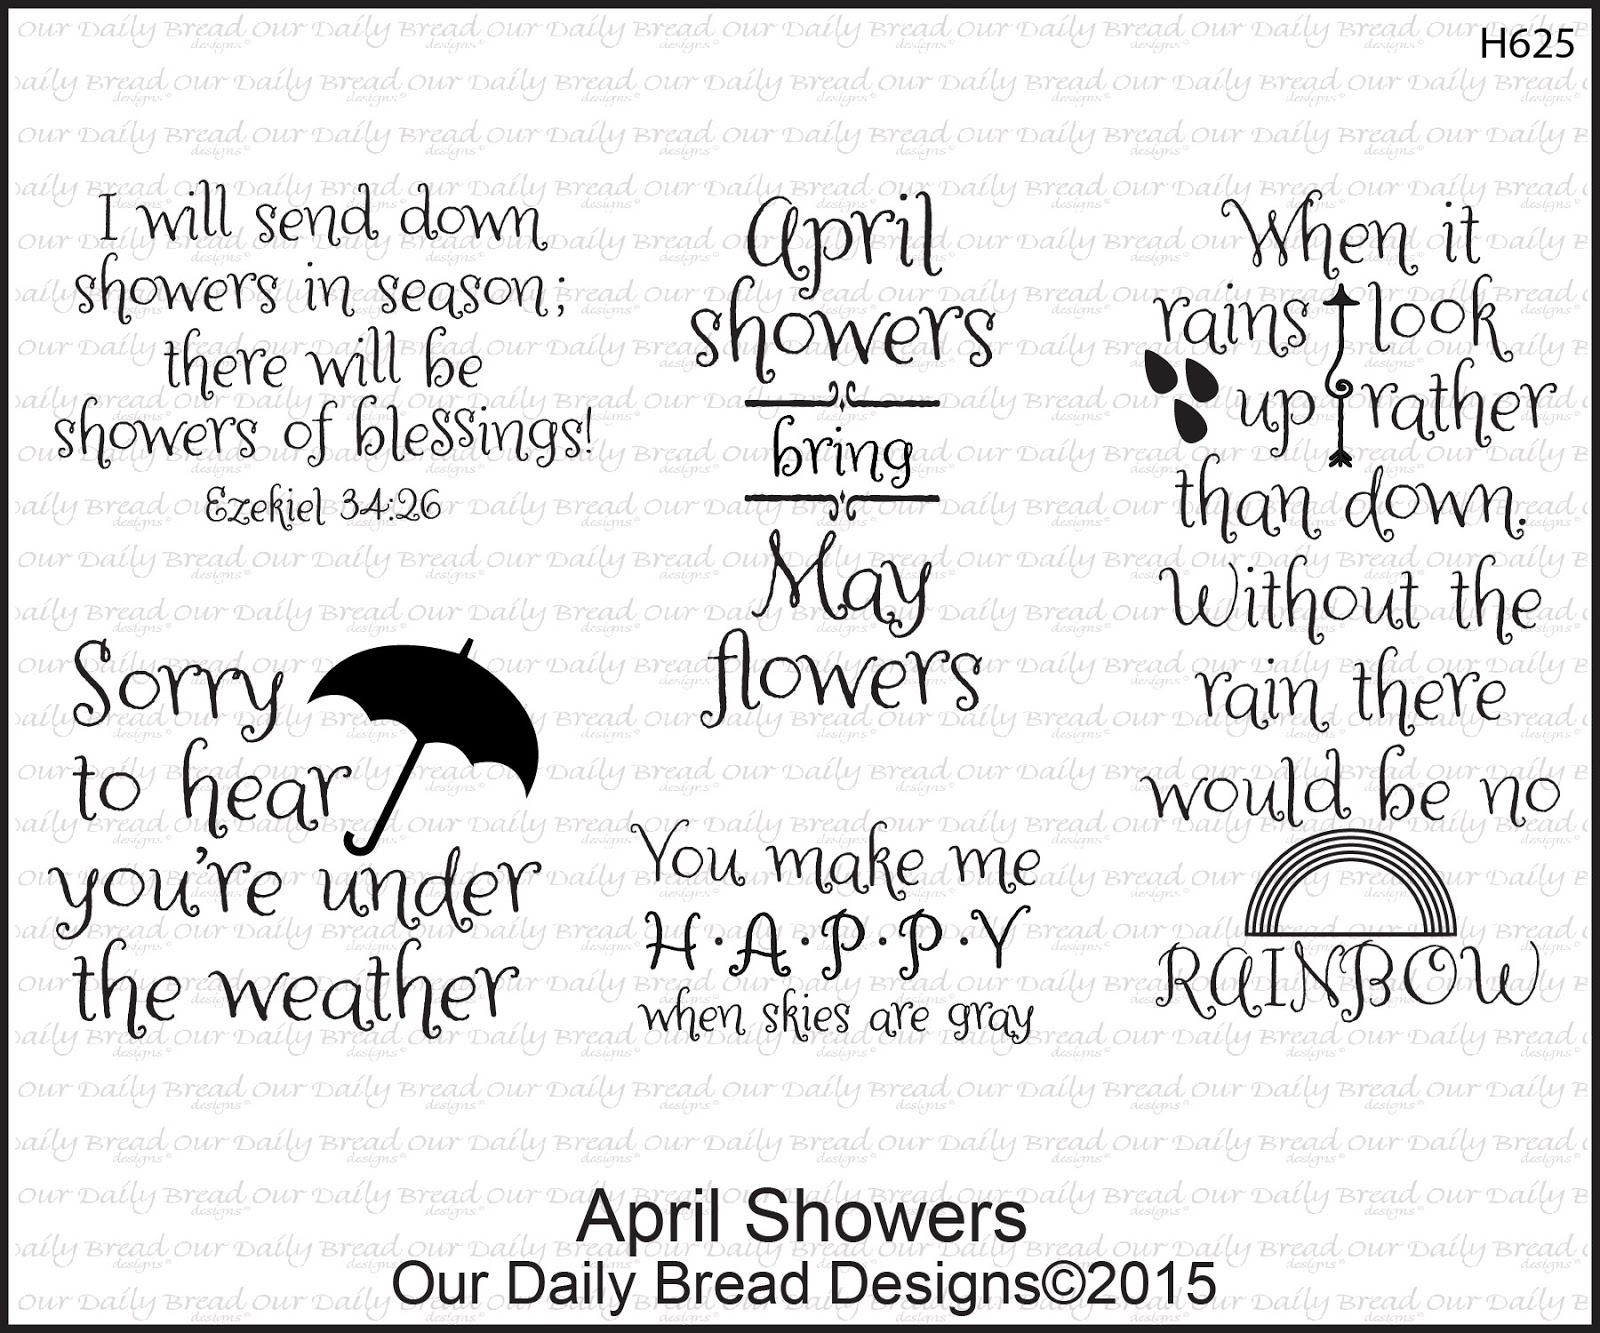 https://www.ourdailybreaddesigns.com/index.php/h625-april-showers.html